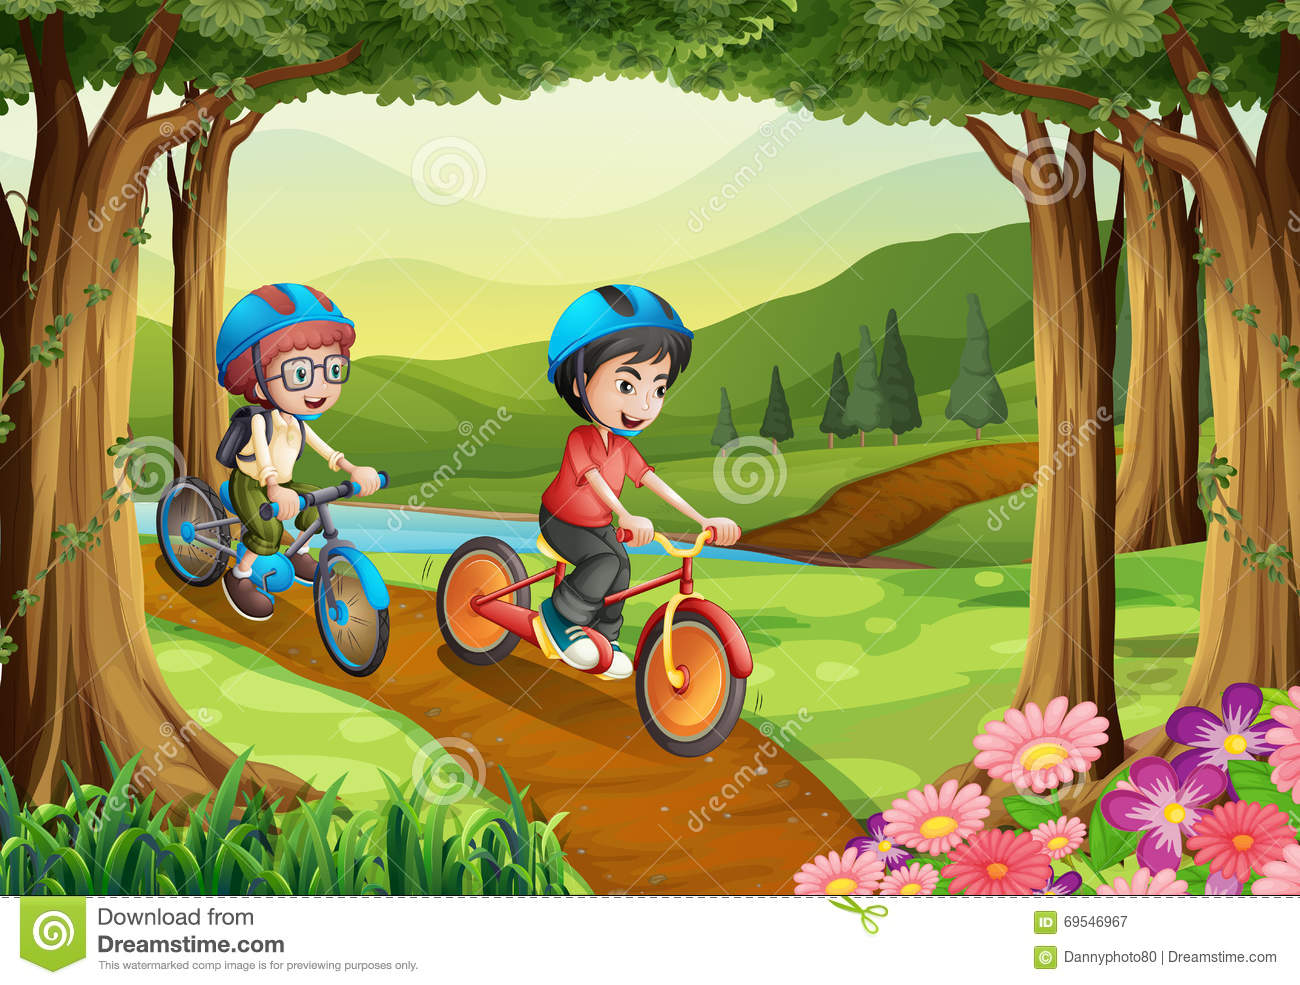 Two Boys Riding Bicycle In The Park Stock Vector ...